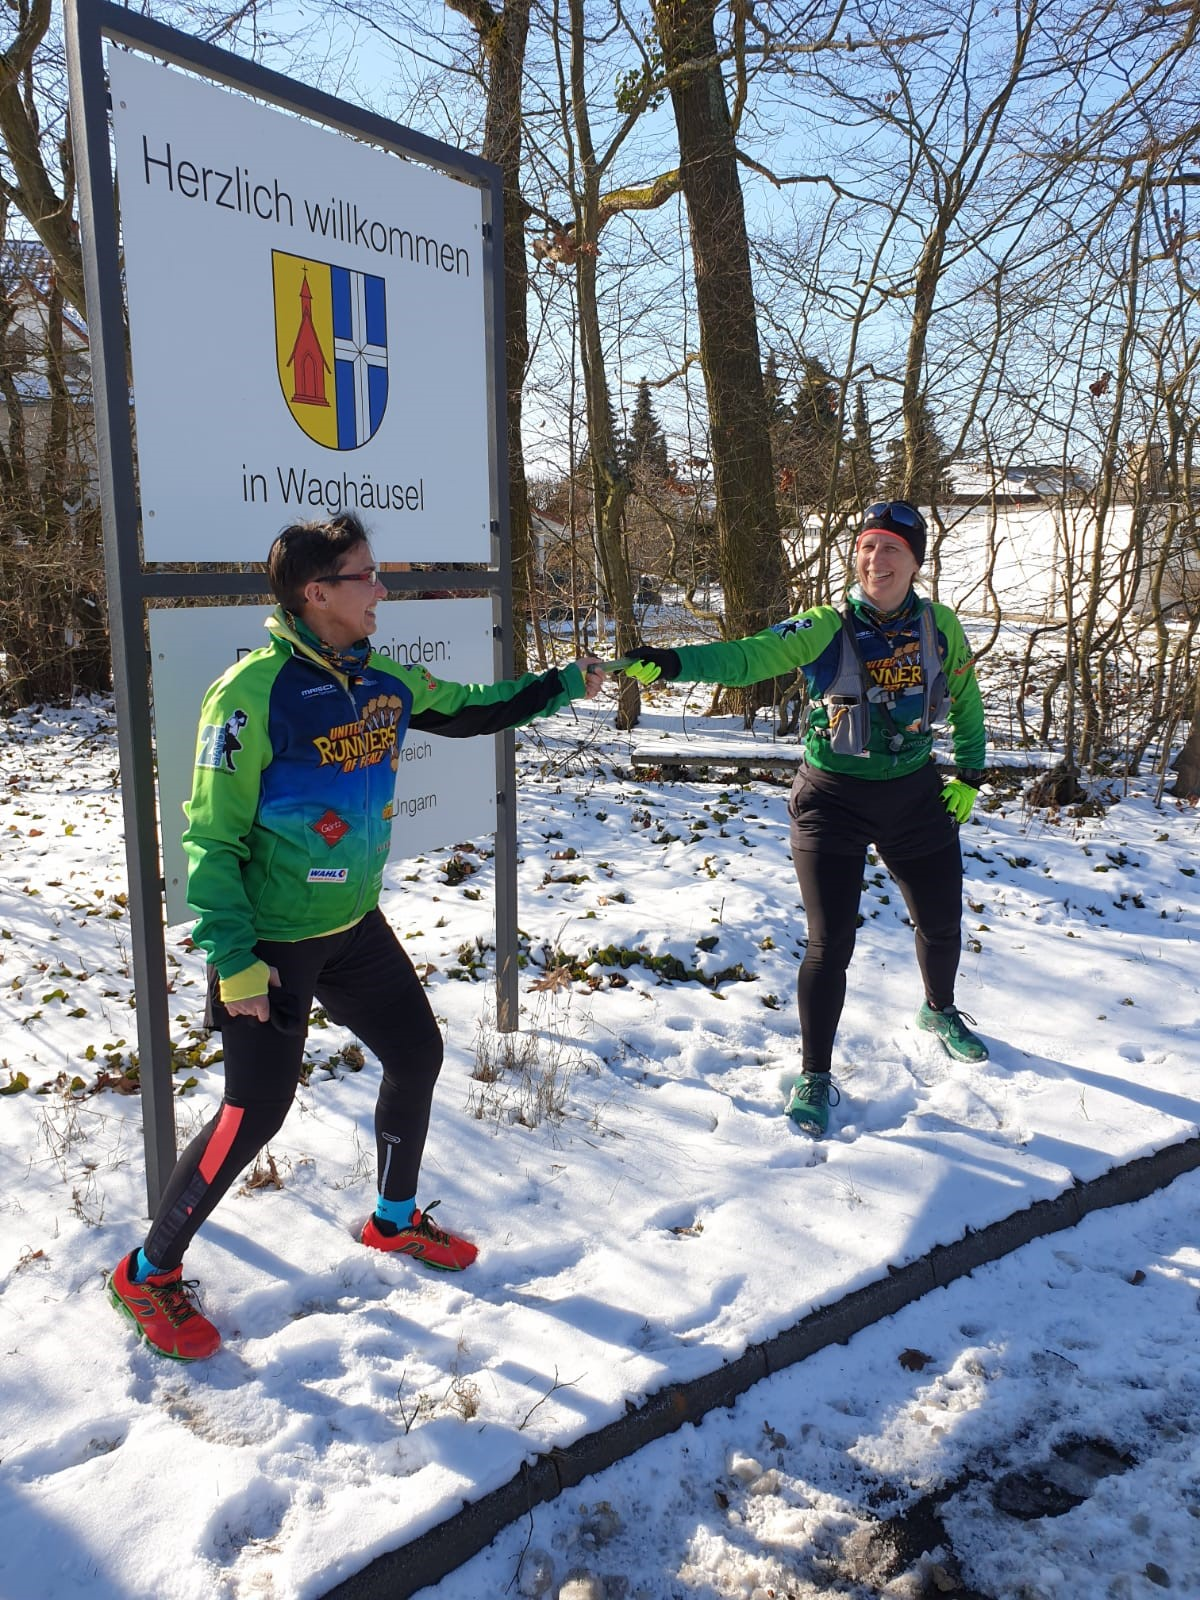 https://united-runners-of-pfalz.de/wp-content/uploads/2021/02/waghauesl.jpg